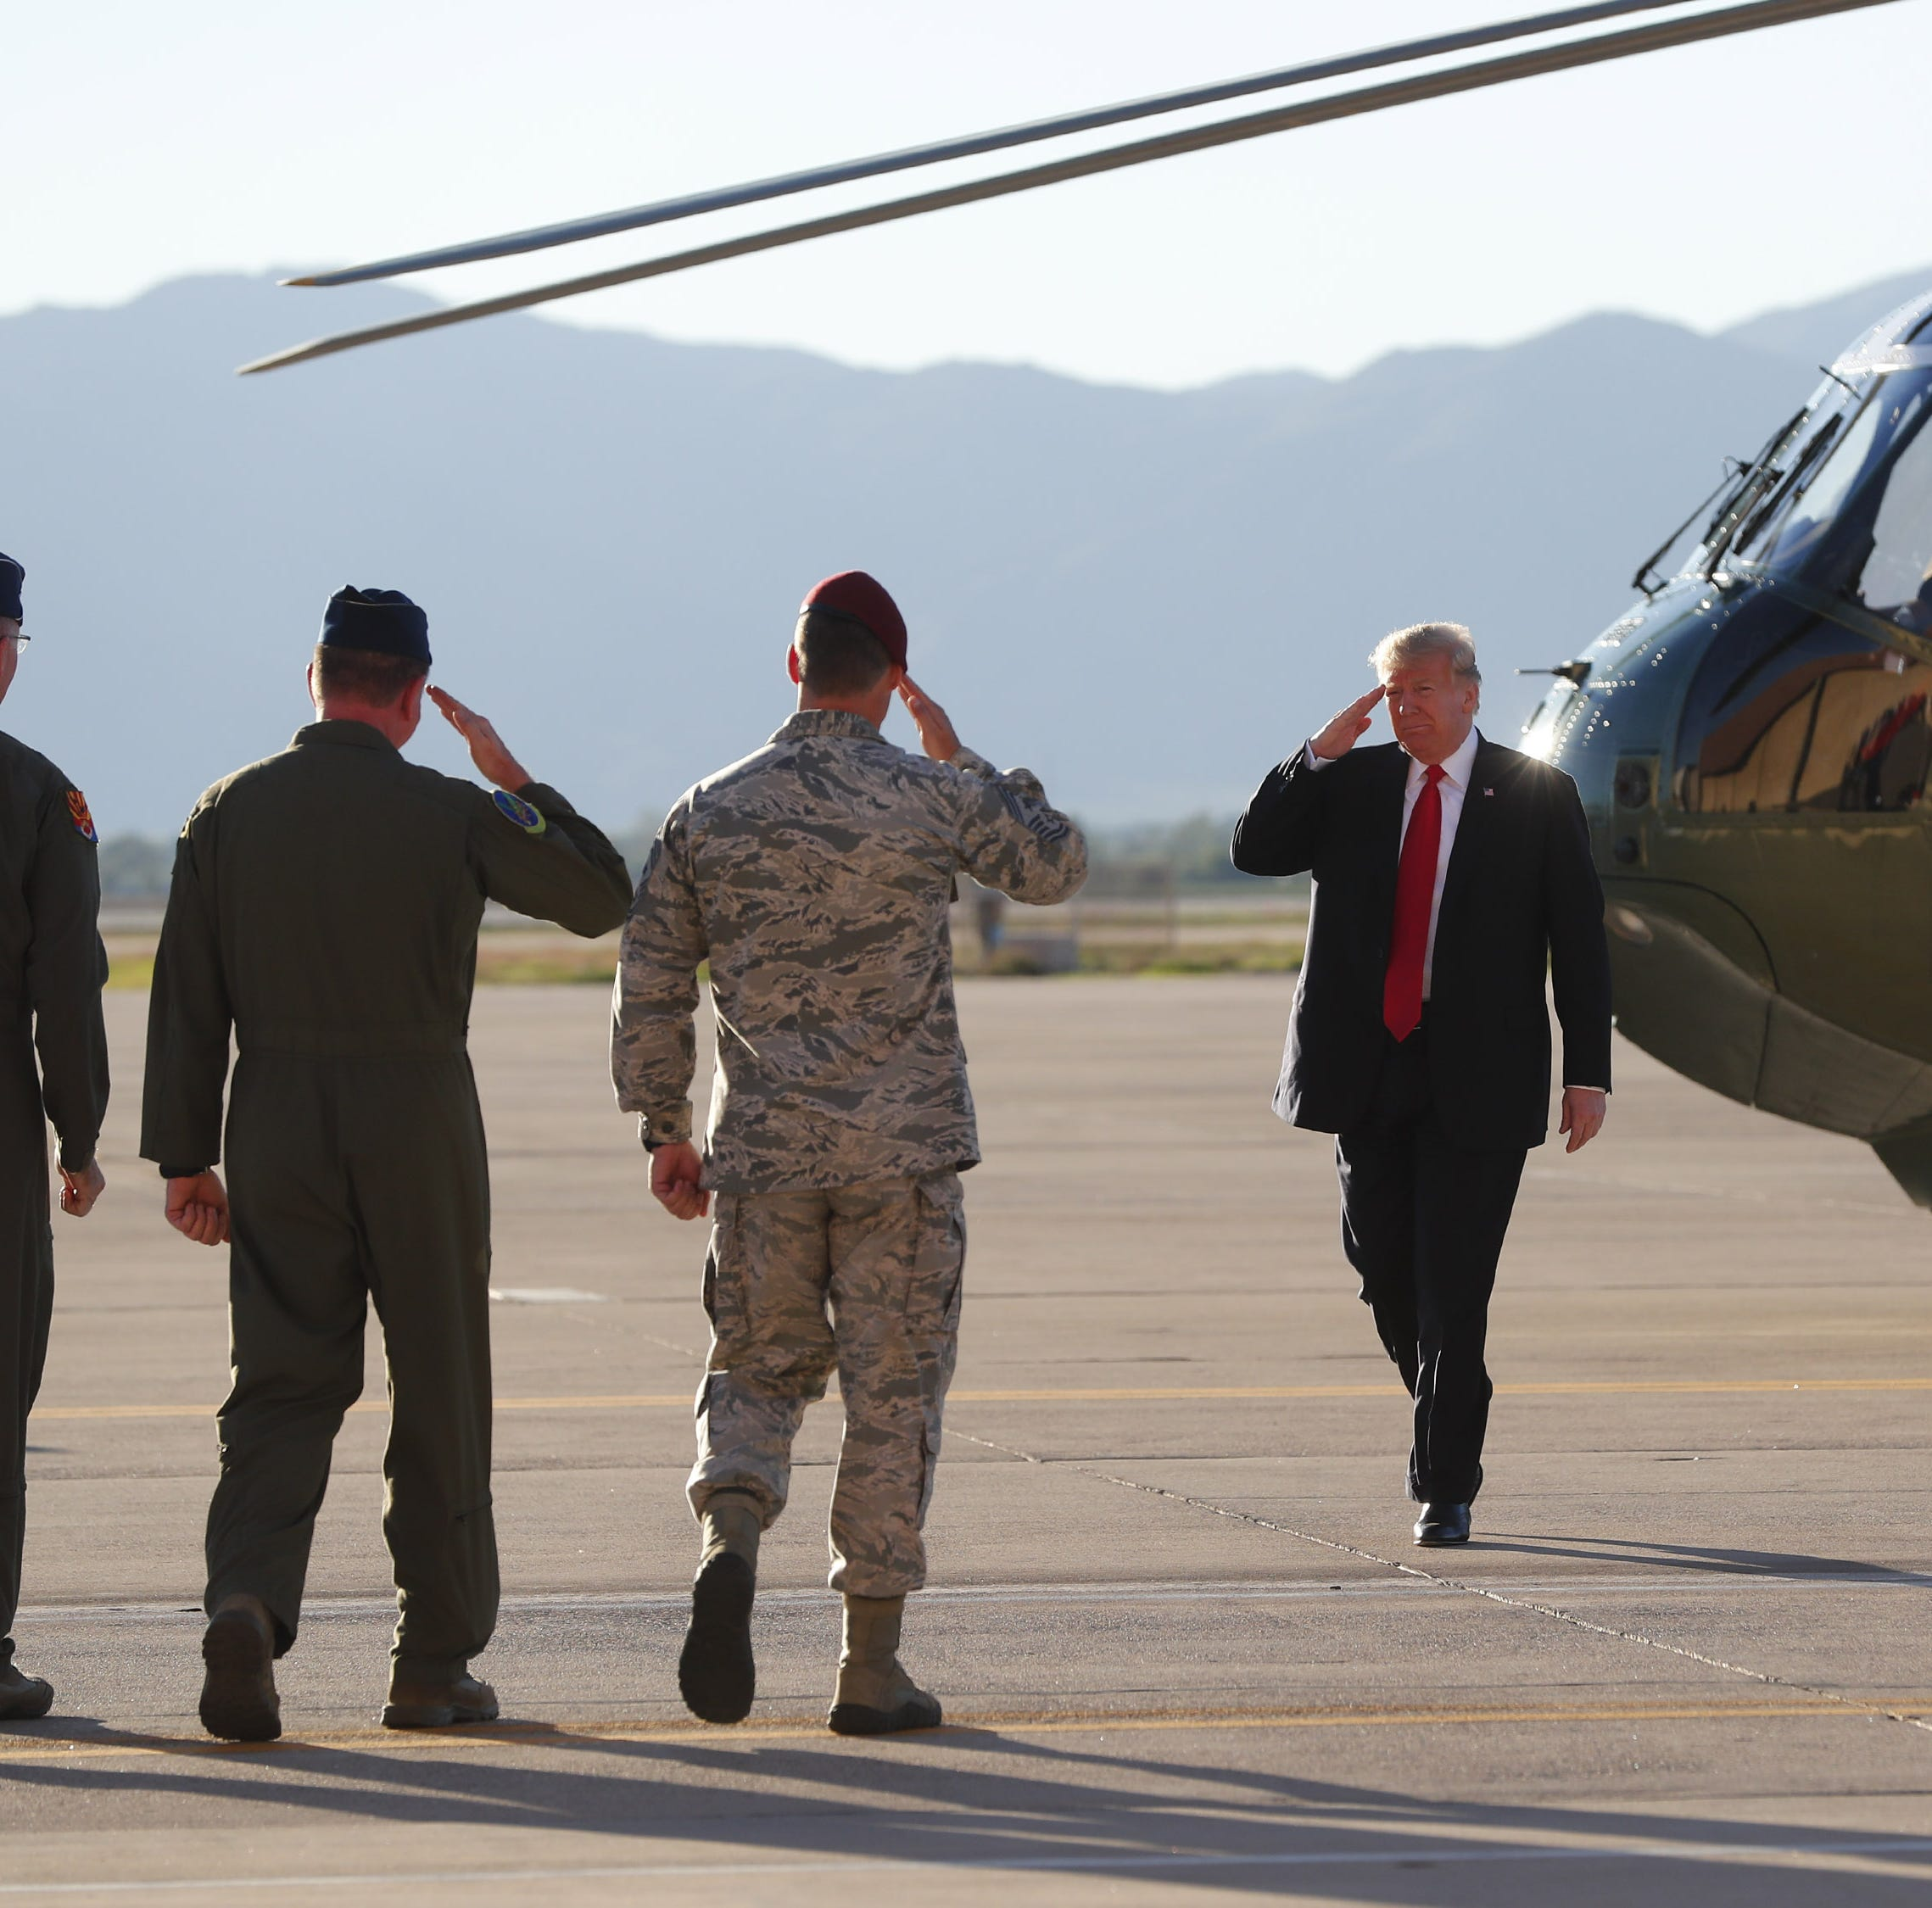 Trump rally: Trump meets with military leaders at Luke Air Force Base